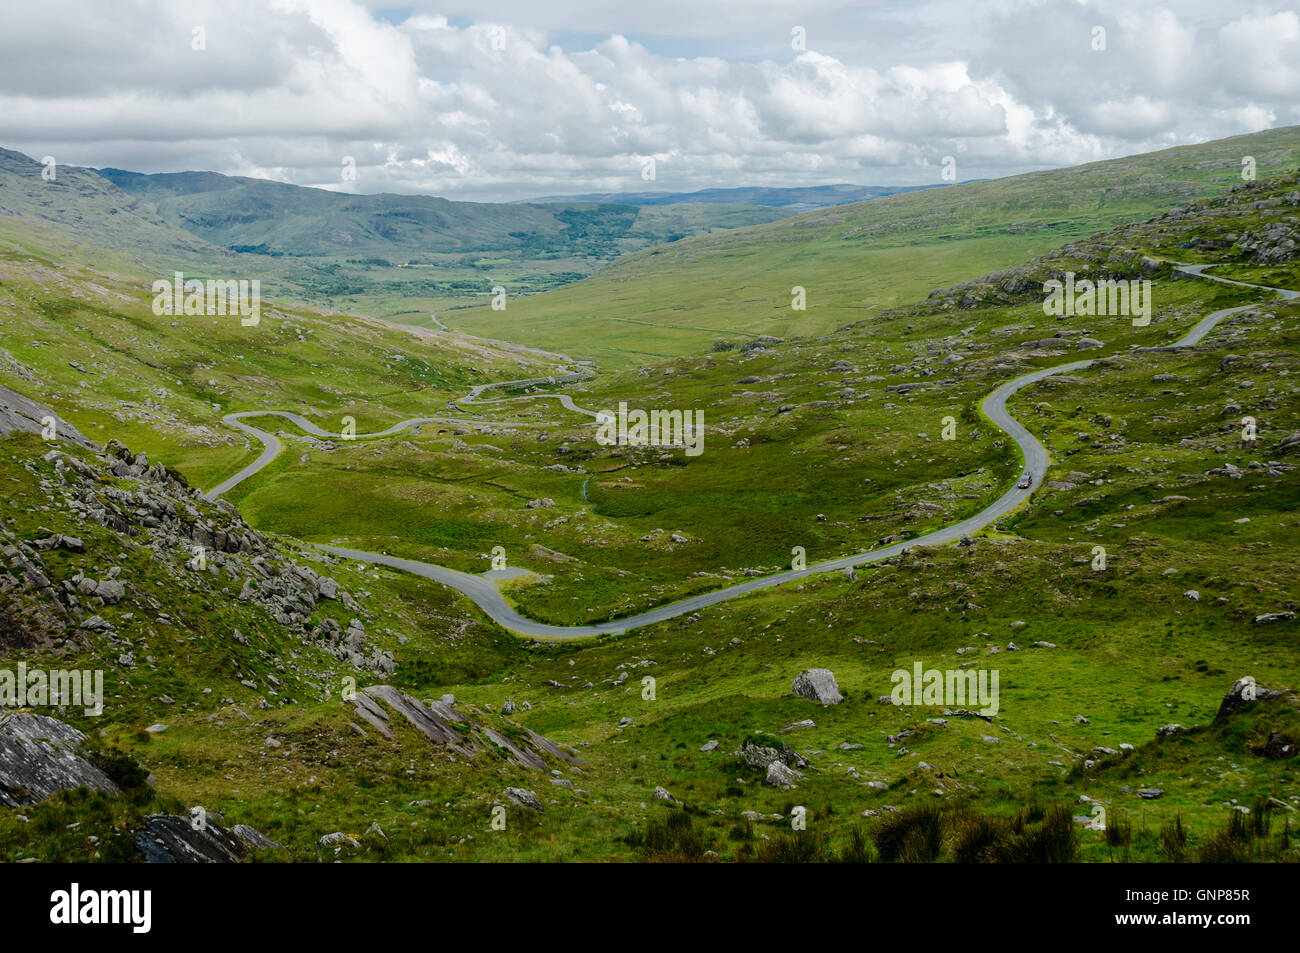 The winding road leading to the Healy Pass, between Country Cork and Country Kerry, Ireland, Europe - Stock Image